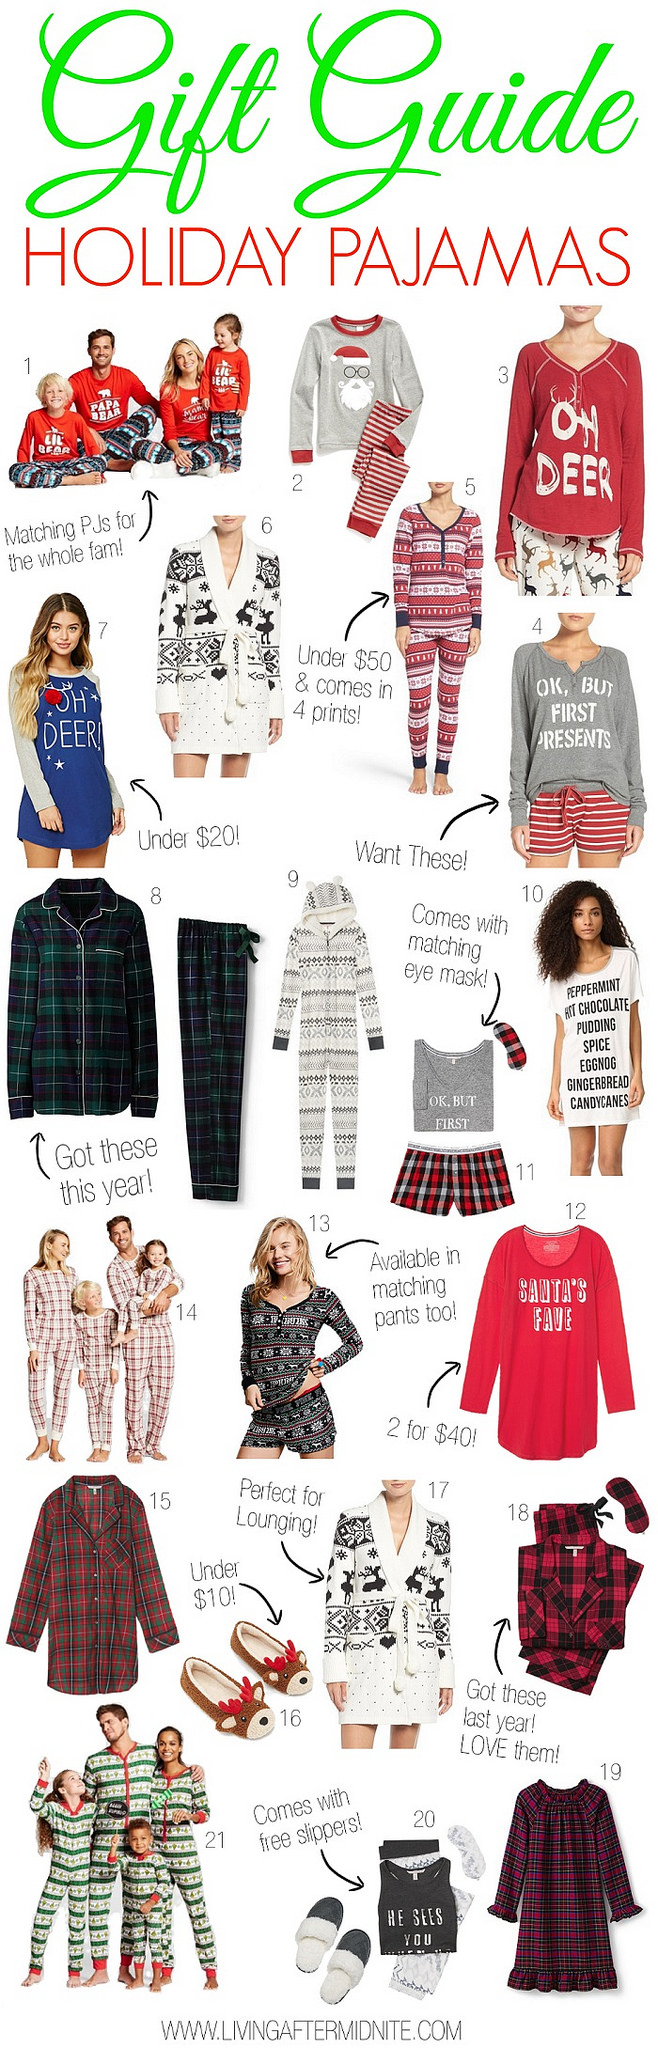 Gift Guide: Holiday Pajamas for the Whole Family